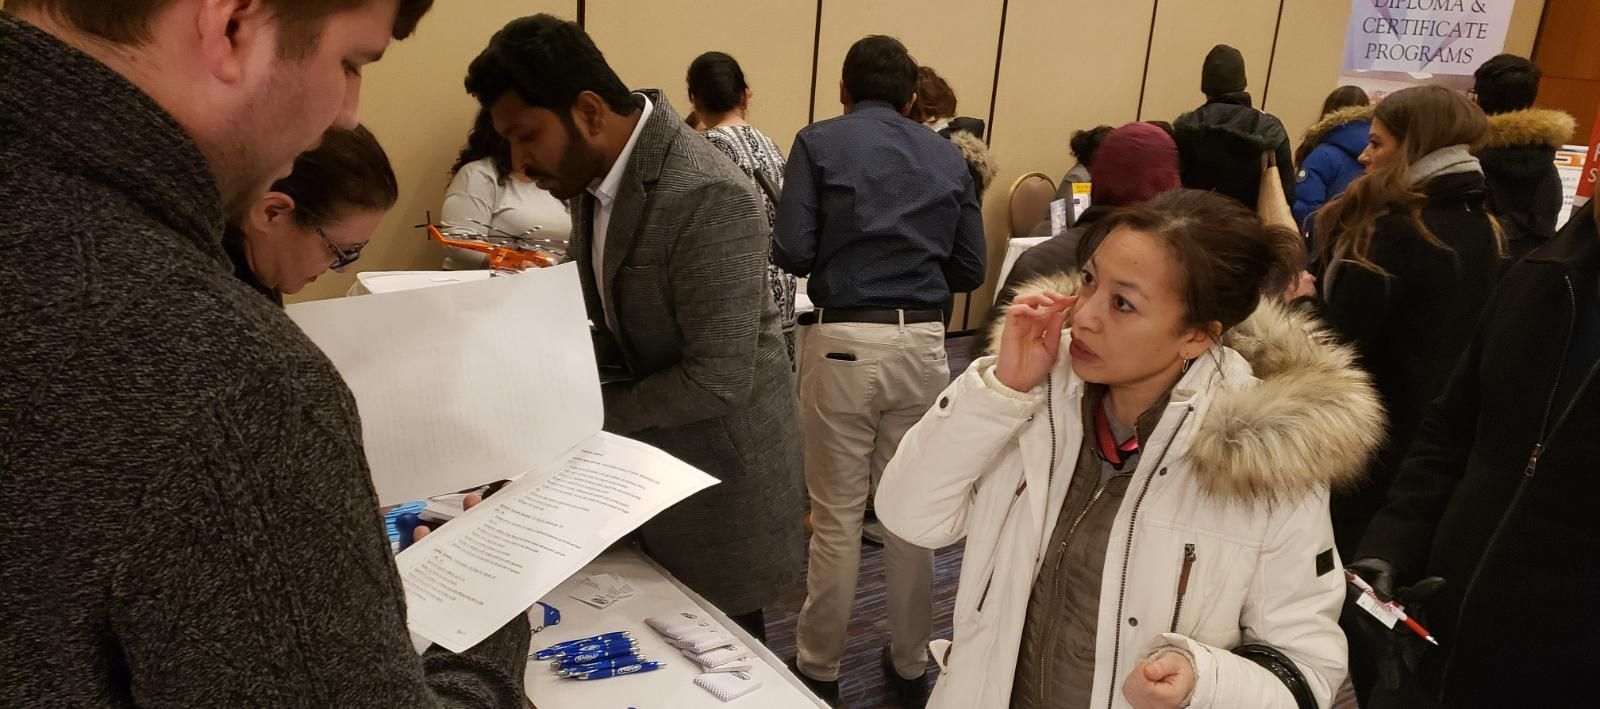 Brampton Job Fair Is Live Today Do Not Miss 1 3pm Courtyard Marriott Meet Face To Face With Hiring Companies From B Job Fair Looking For A Job New Career